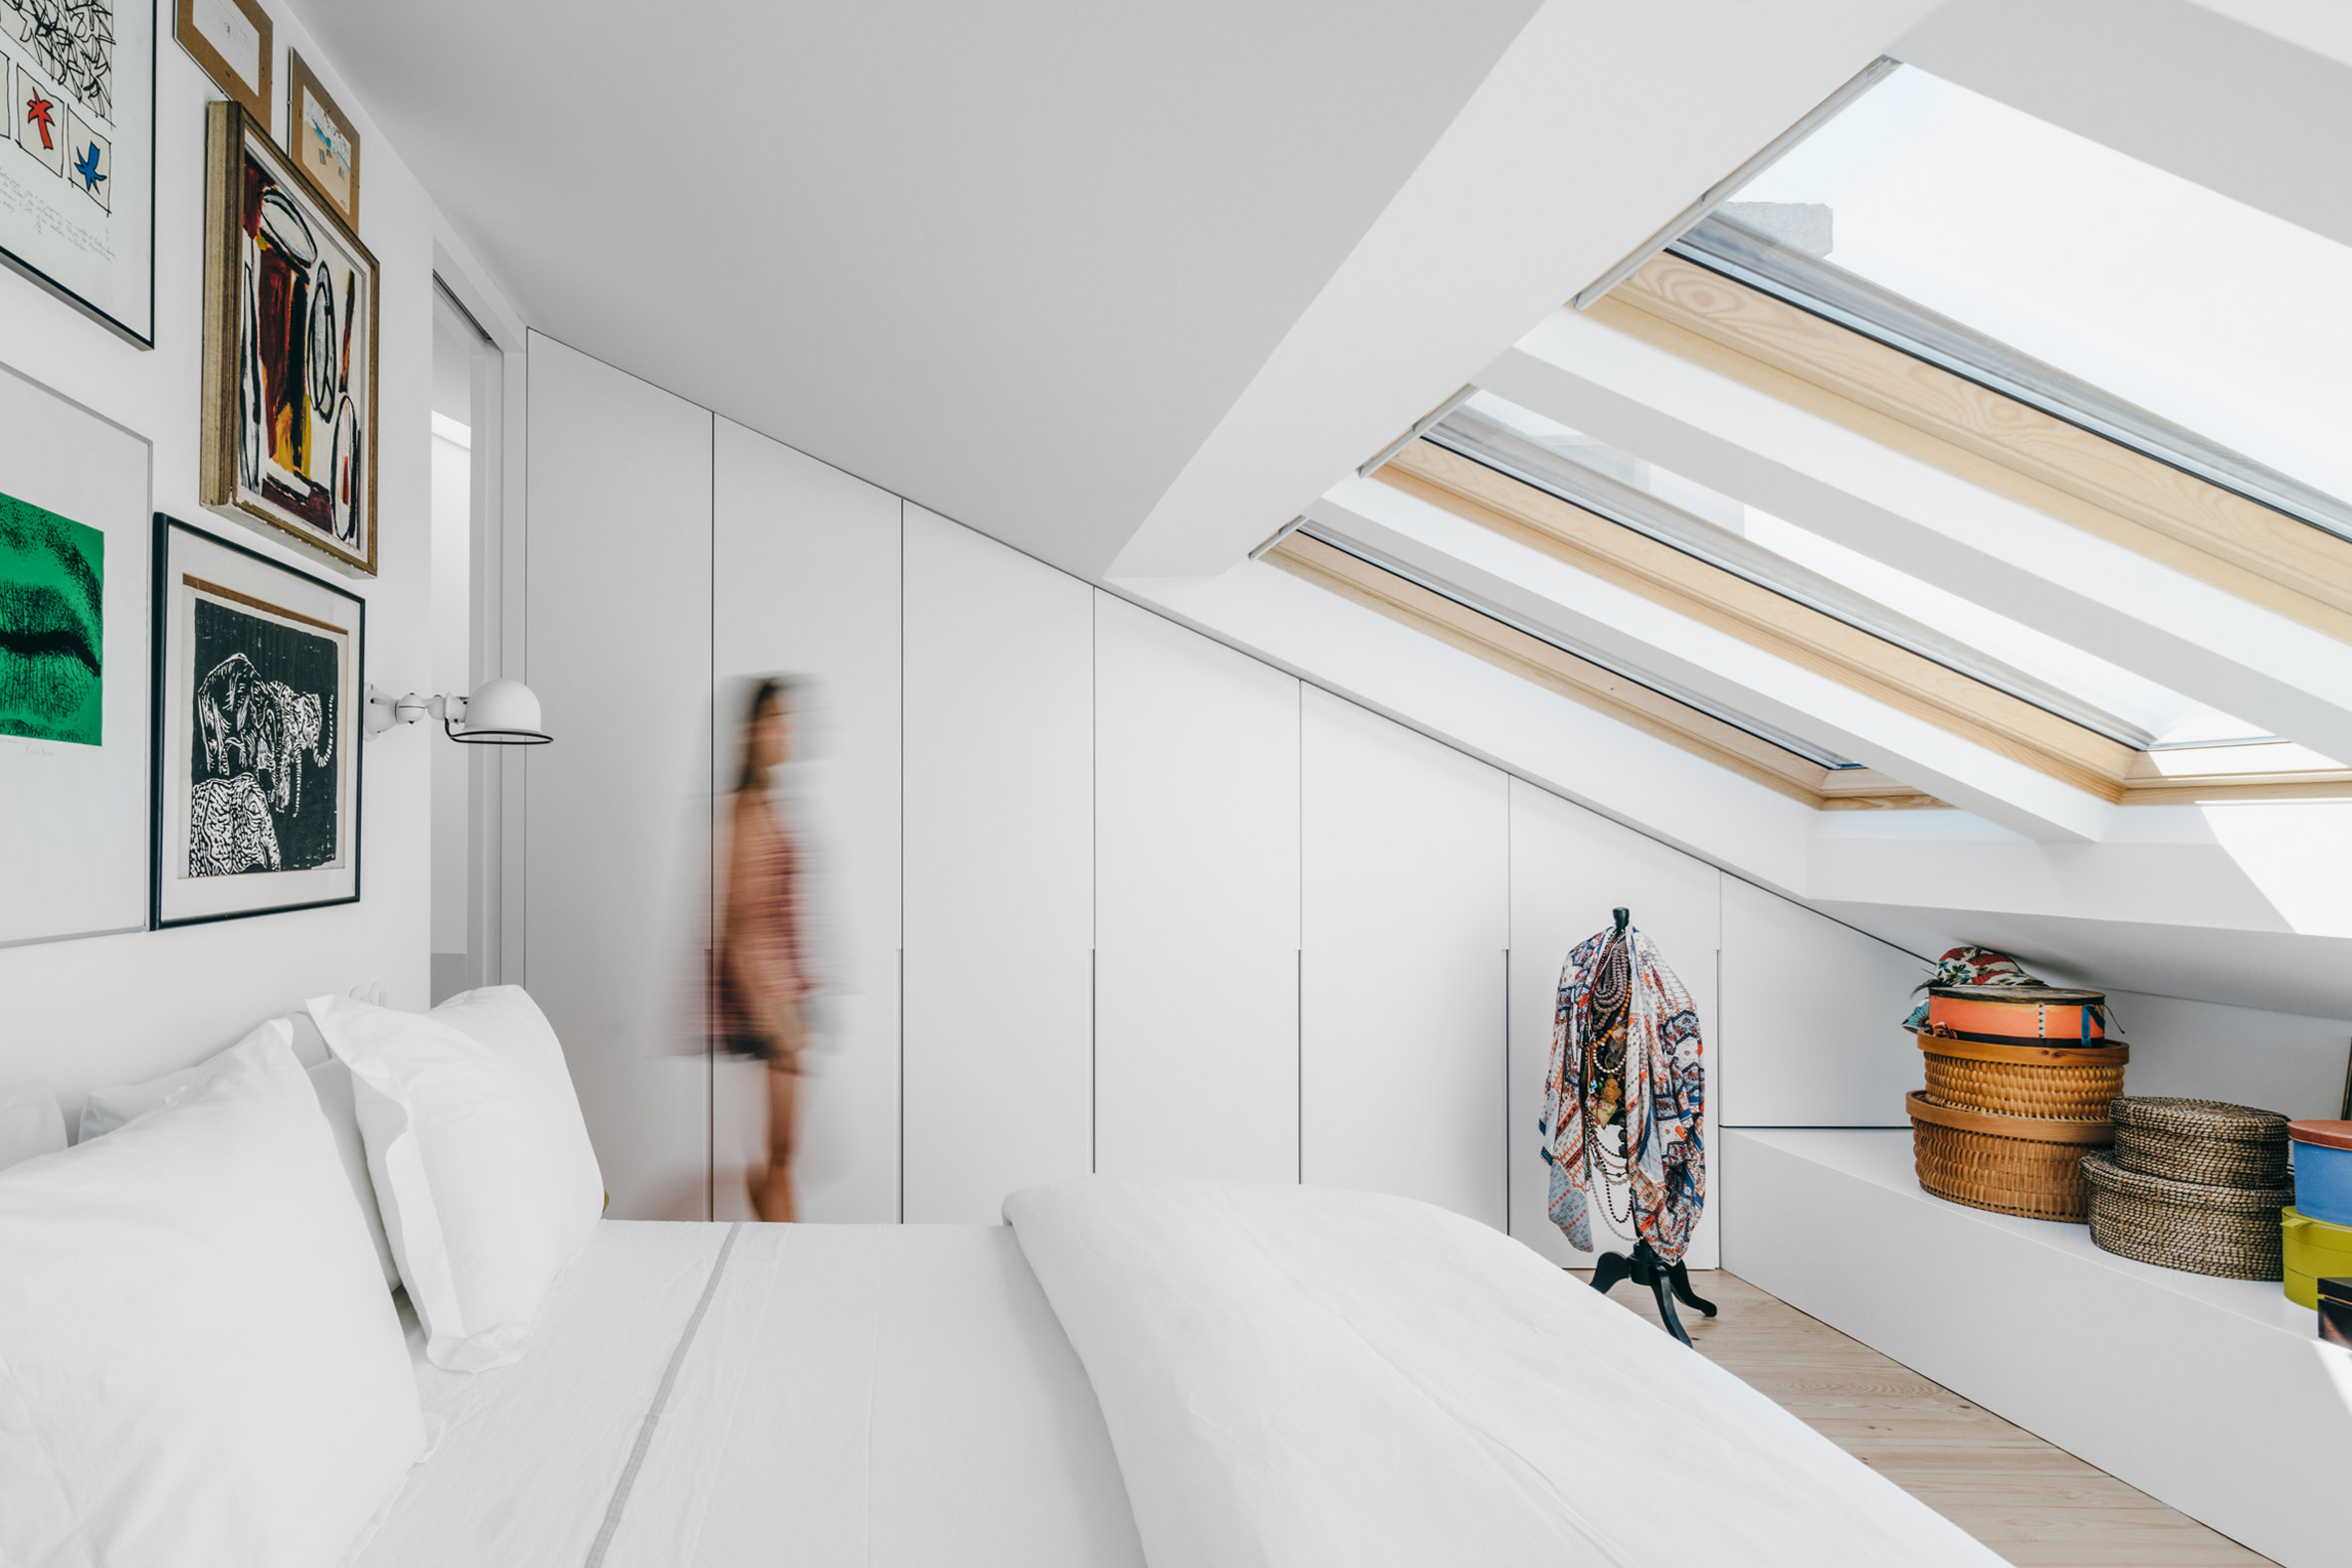 b-a-apartment-atelier-data-apartment-interiors-lisbon-portugal_dezeen_2364_col_14